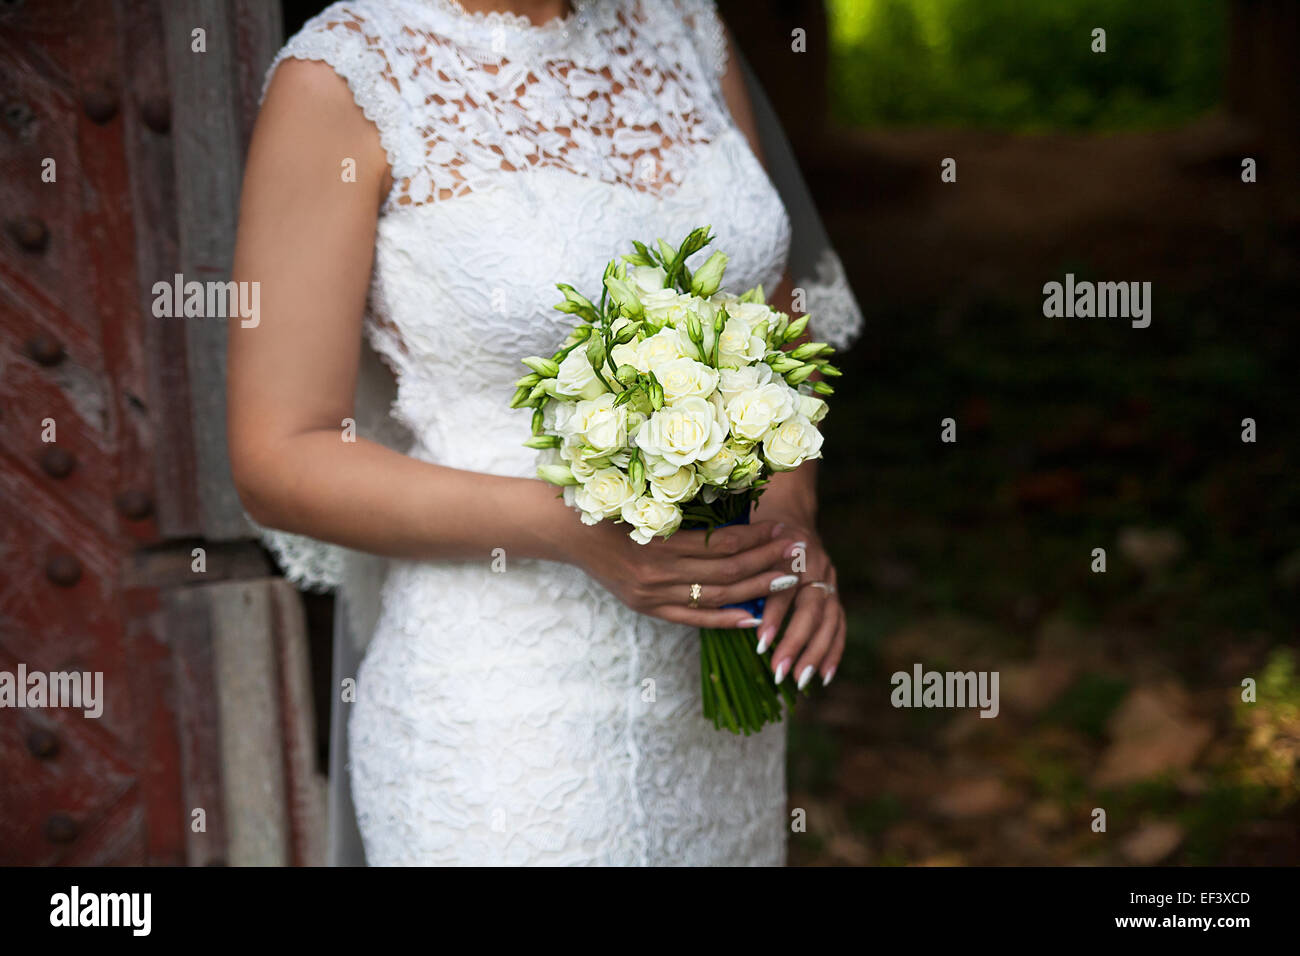 Bride holding wedding flower bouquet of roses. - Stock Image